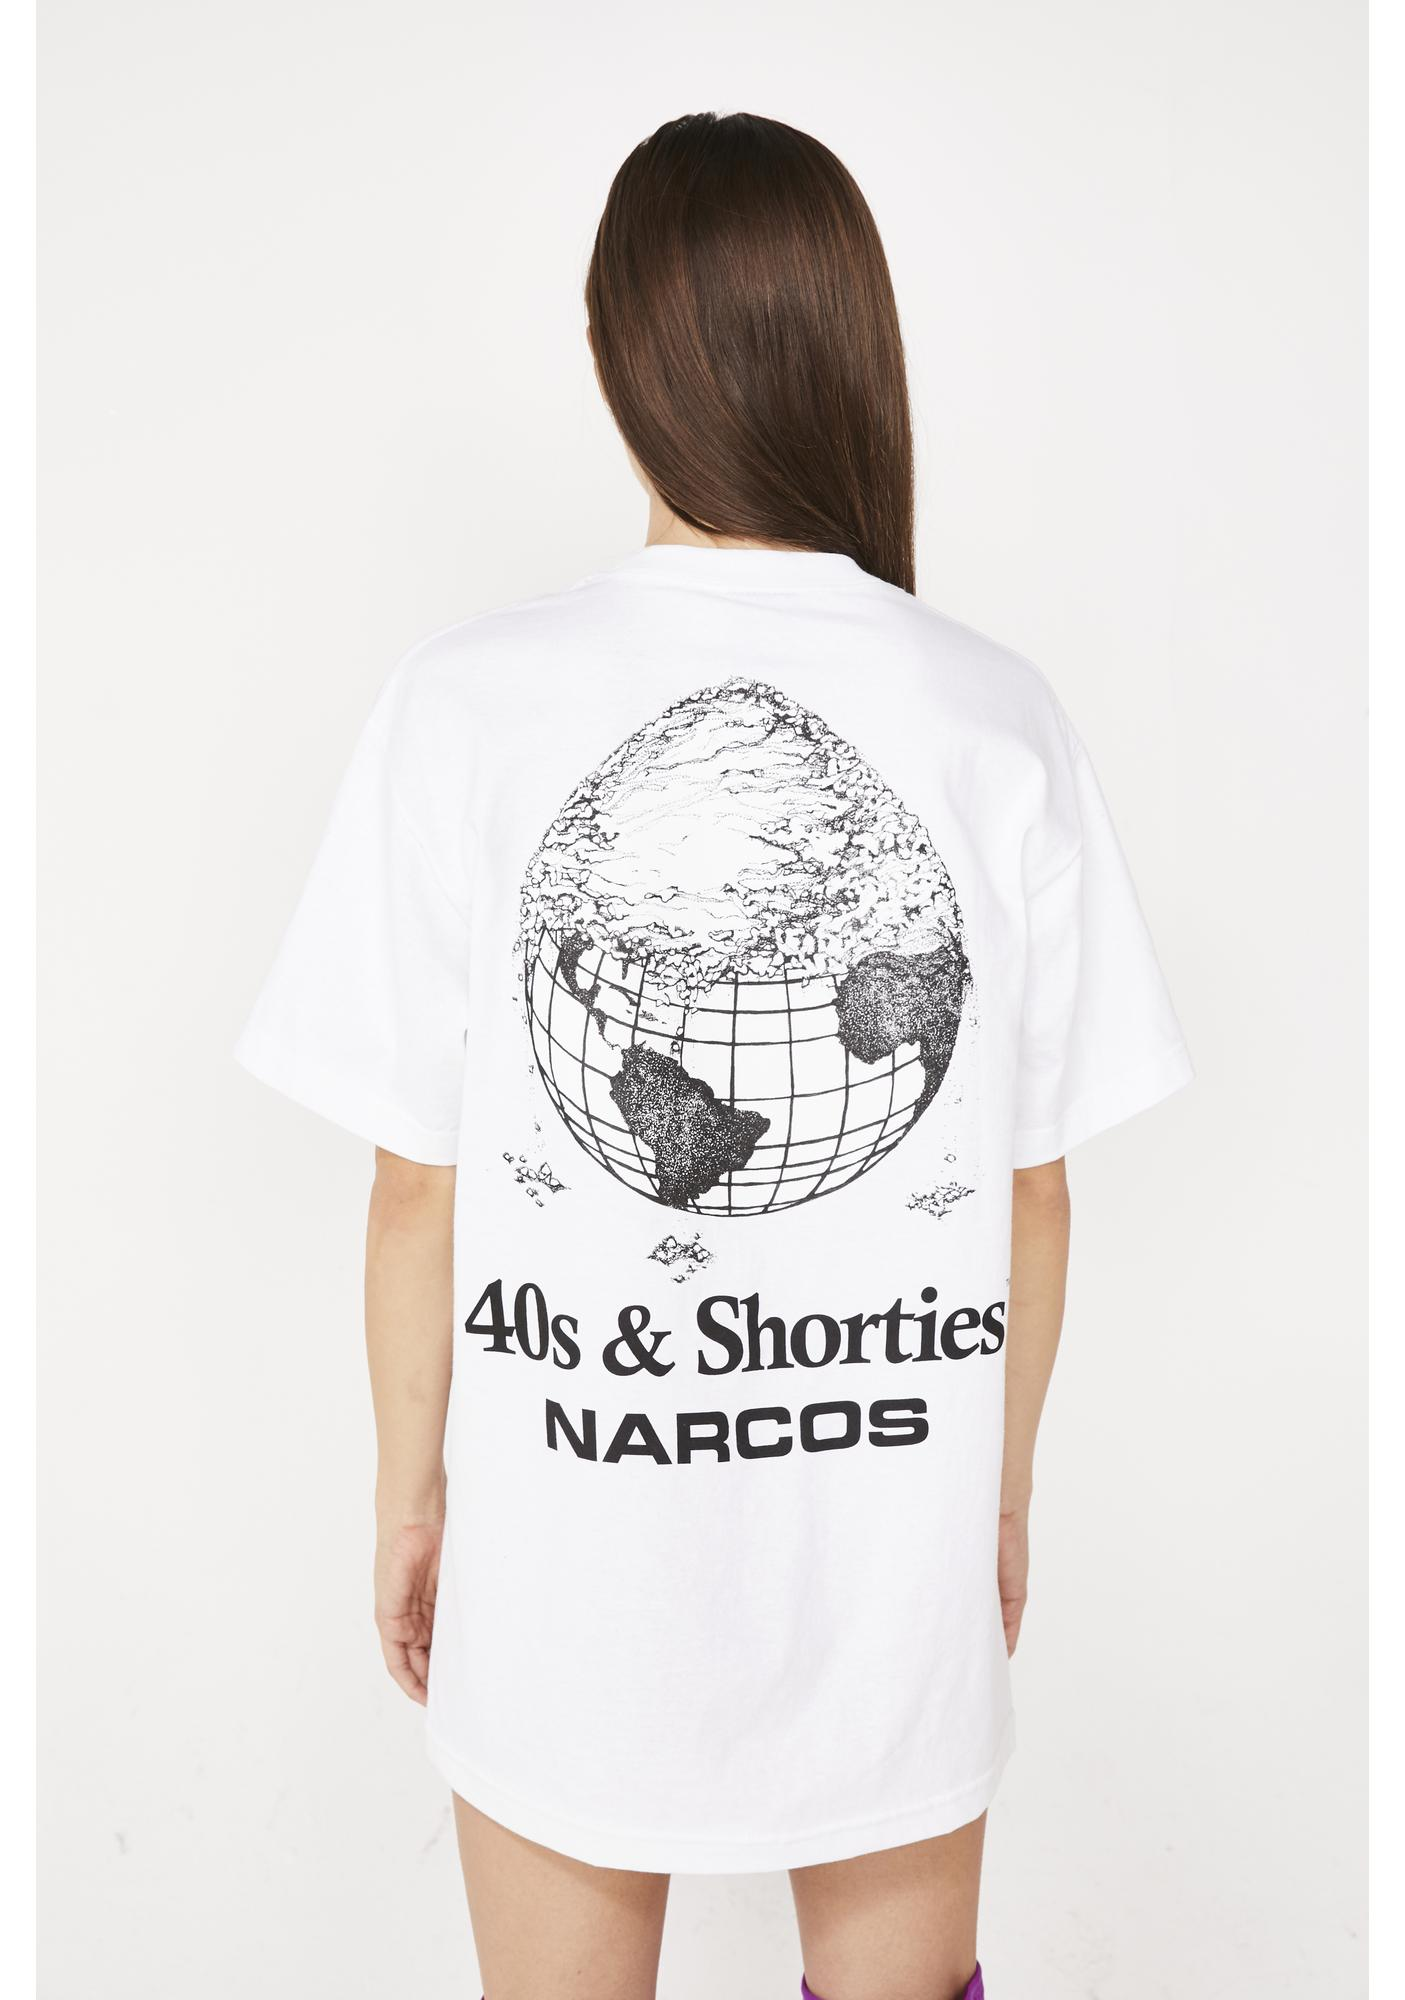 40s & Shorties X Narcos Cover The Earth Tee